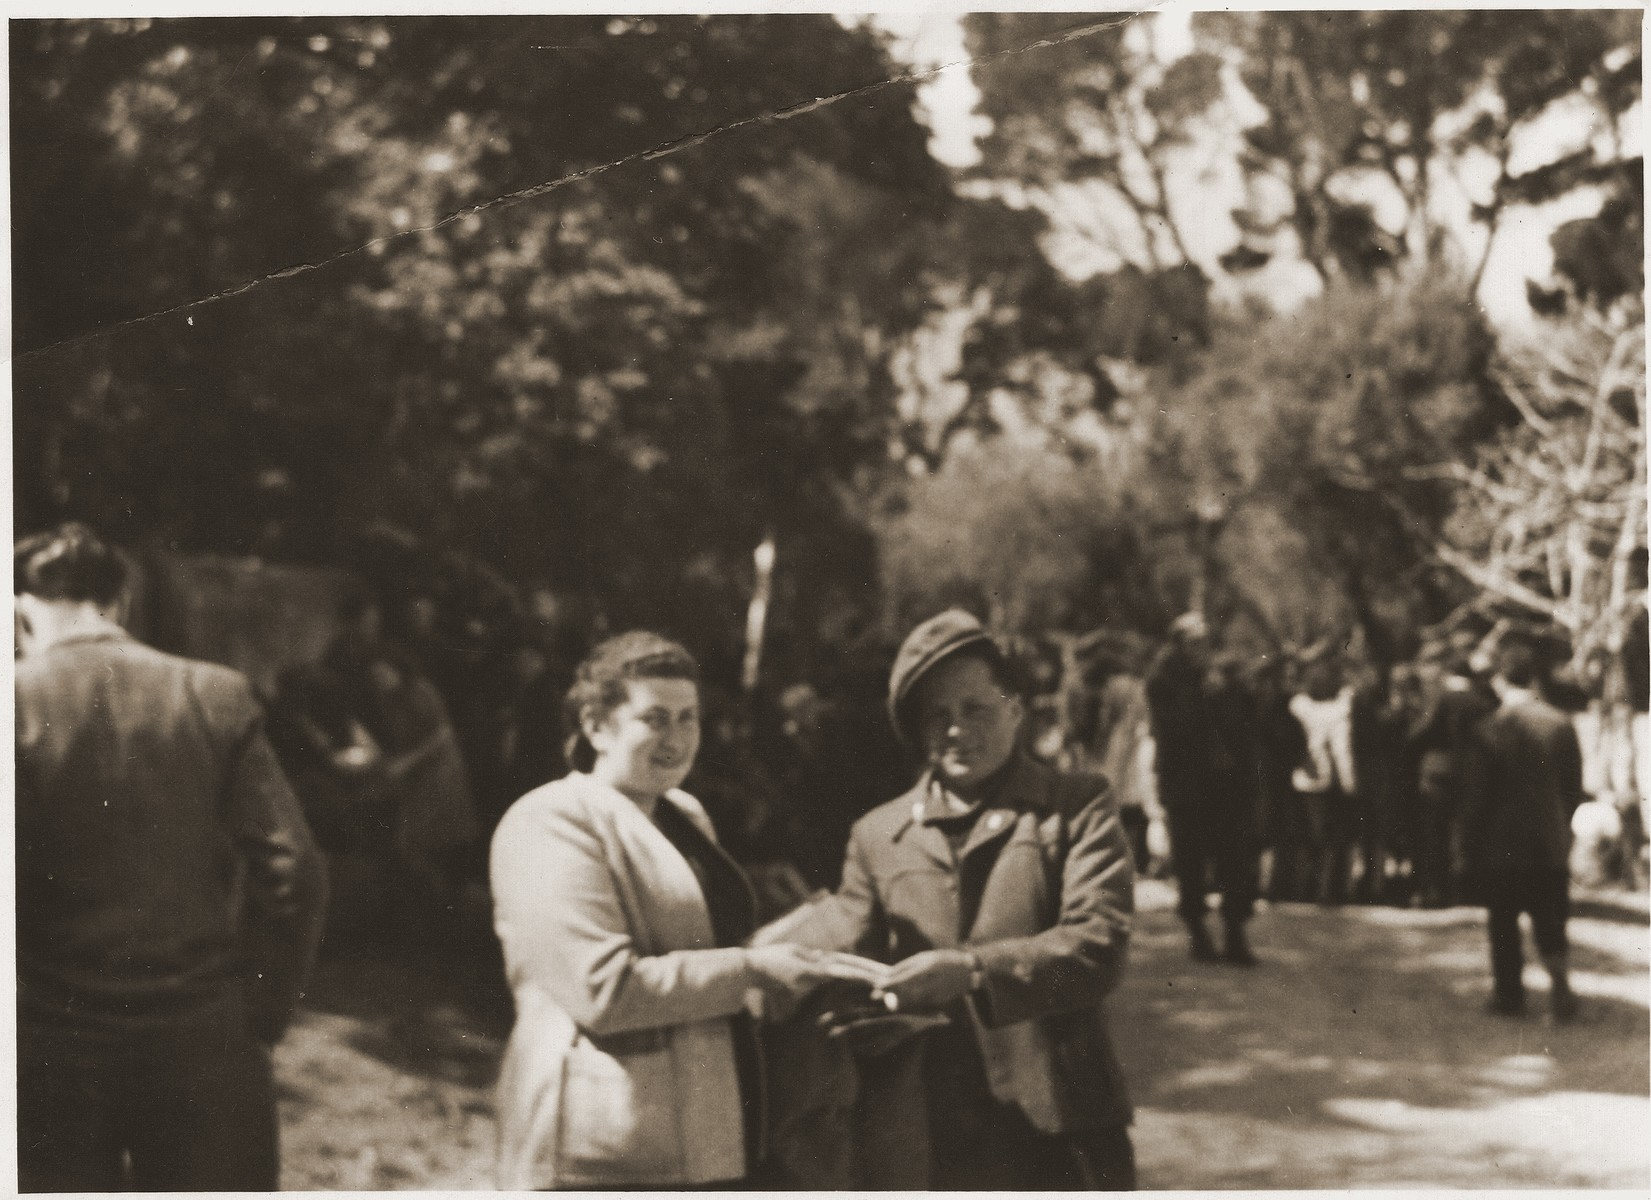 Hadassah Bimko and poses with another DP at the Marsylia transit camp (a former Yugoslav POW camp) in Marseilles.  Bimko icame to Marseilles to accompany a transport of Jewish orphans from the Bergen-Belsen displaced persons' camp who will  board the SS Champollion for Palestine.